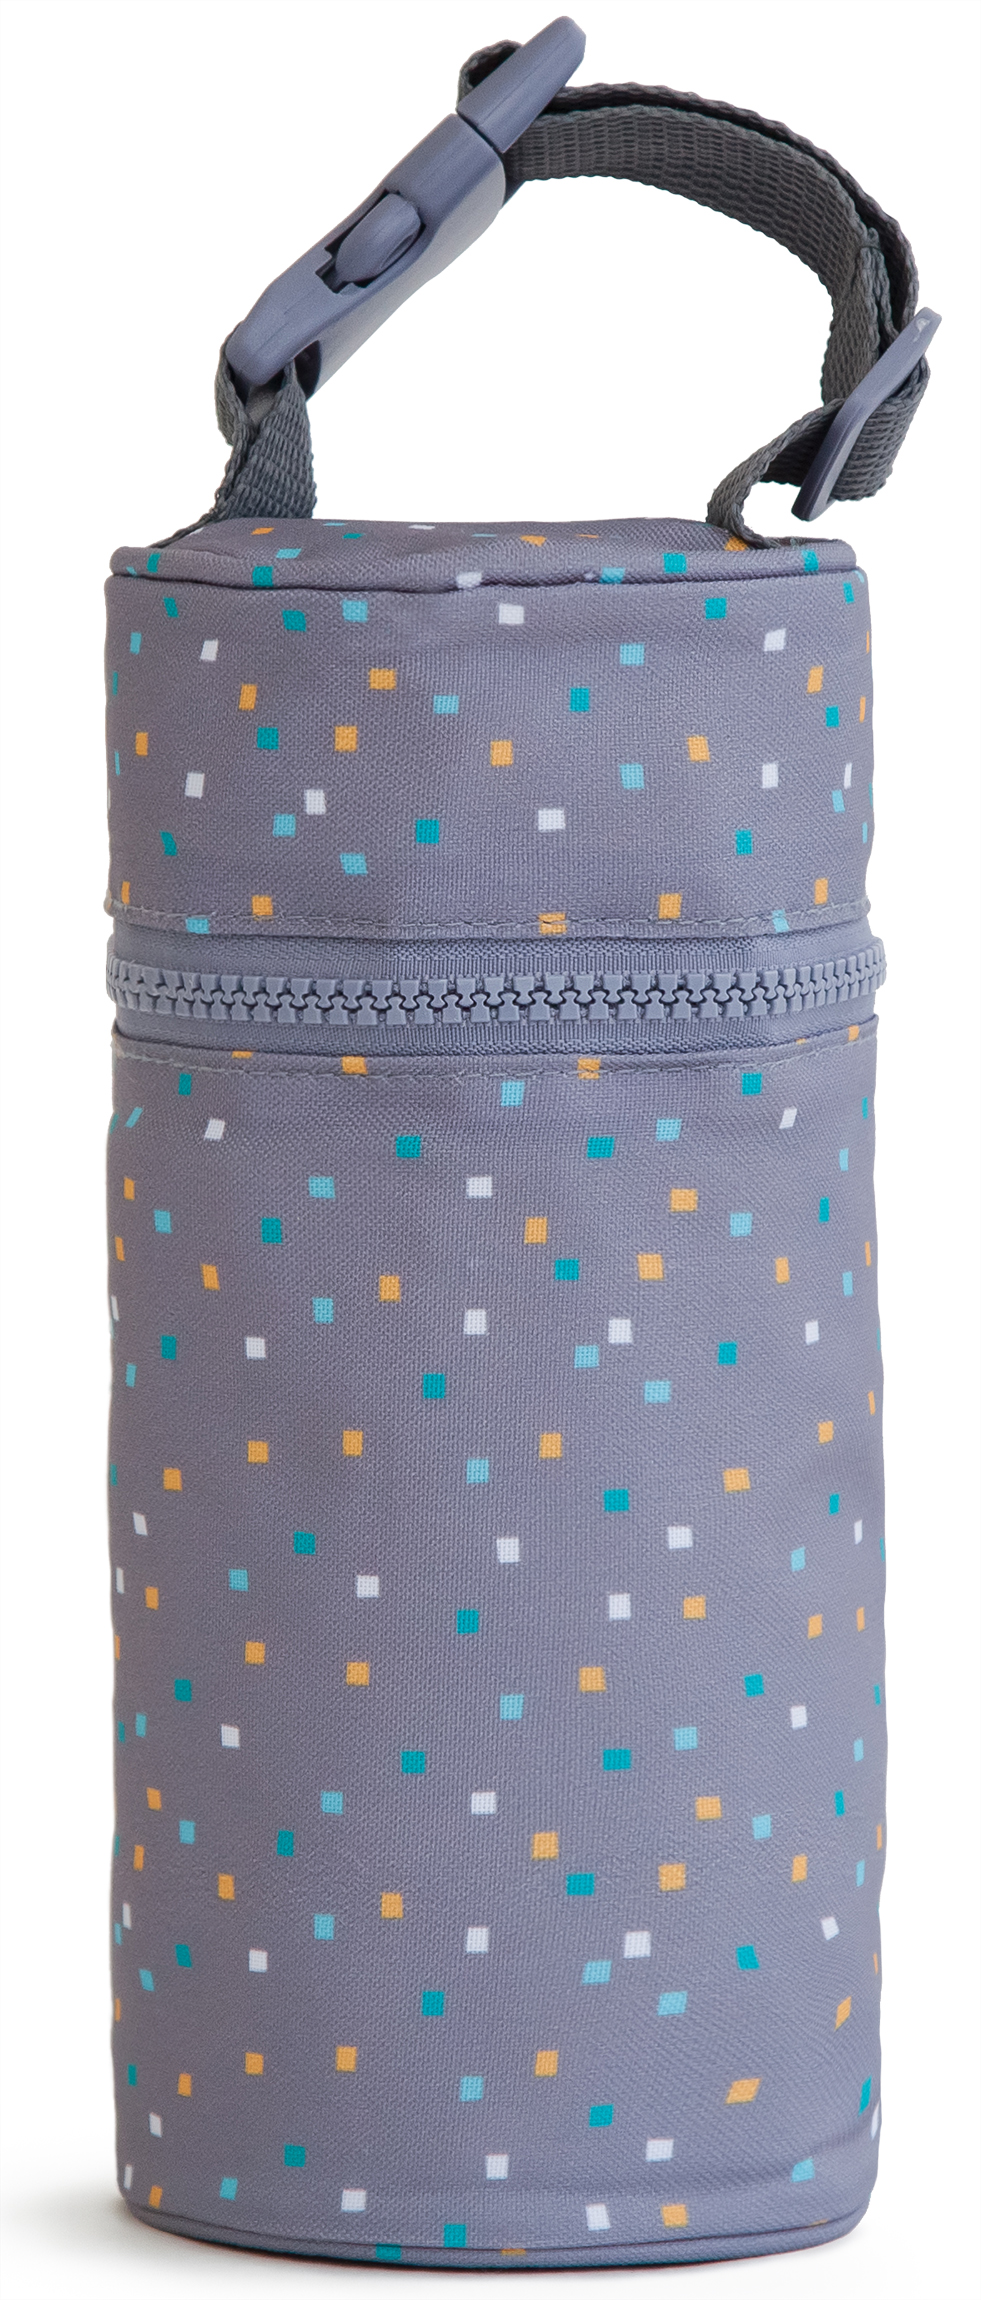 Kenley Insulated Baby Bottle Bag Warmer Cooler Travel